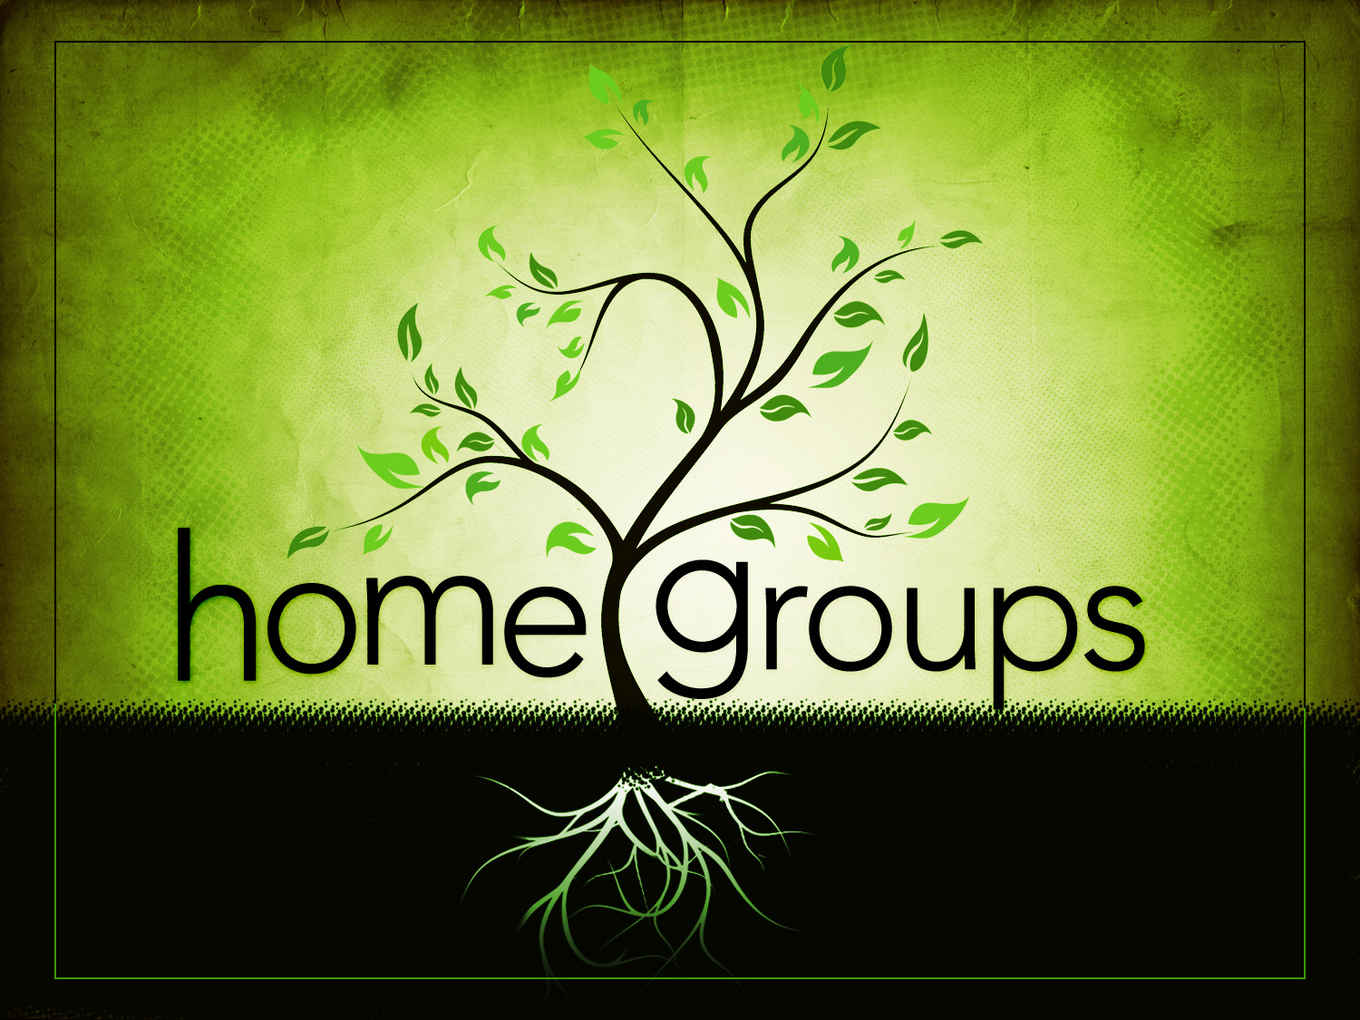 home groups_t_nv